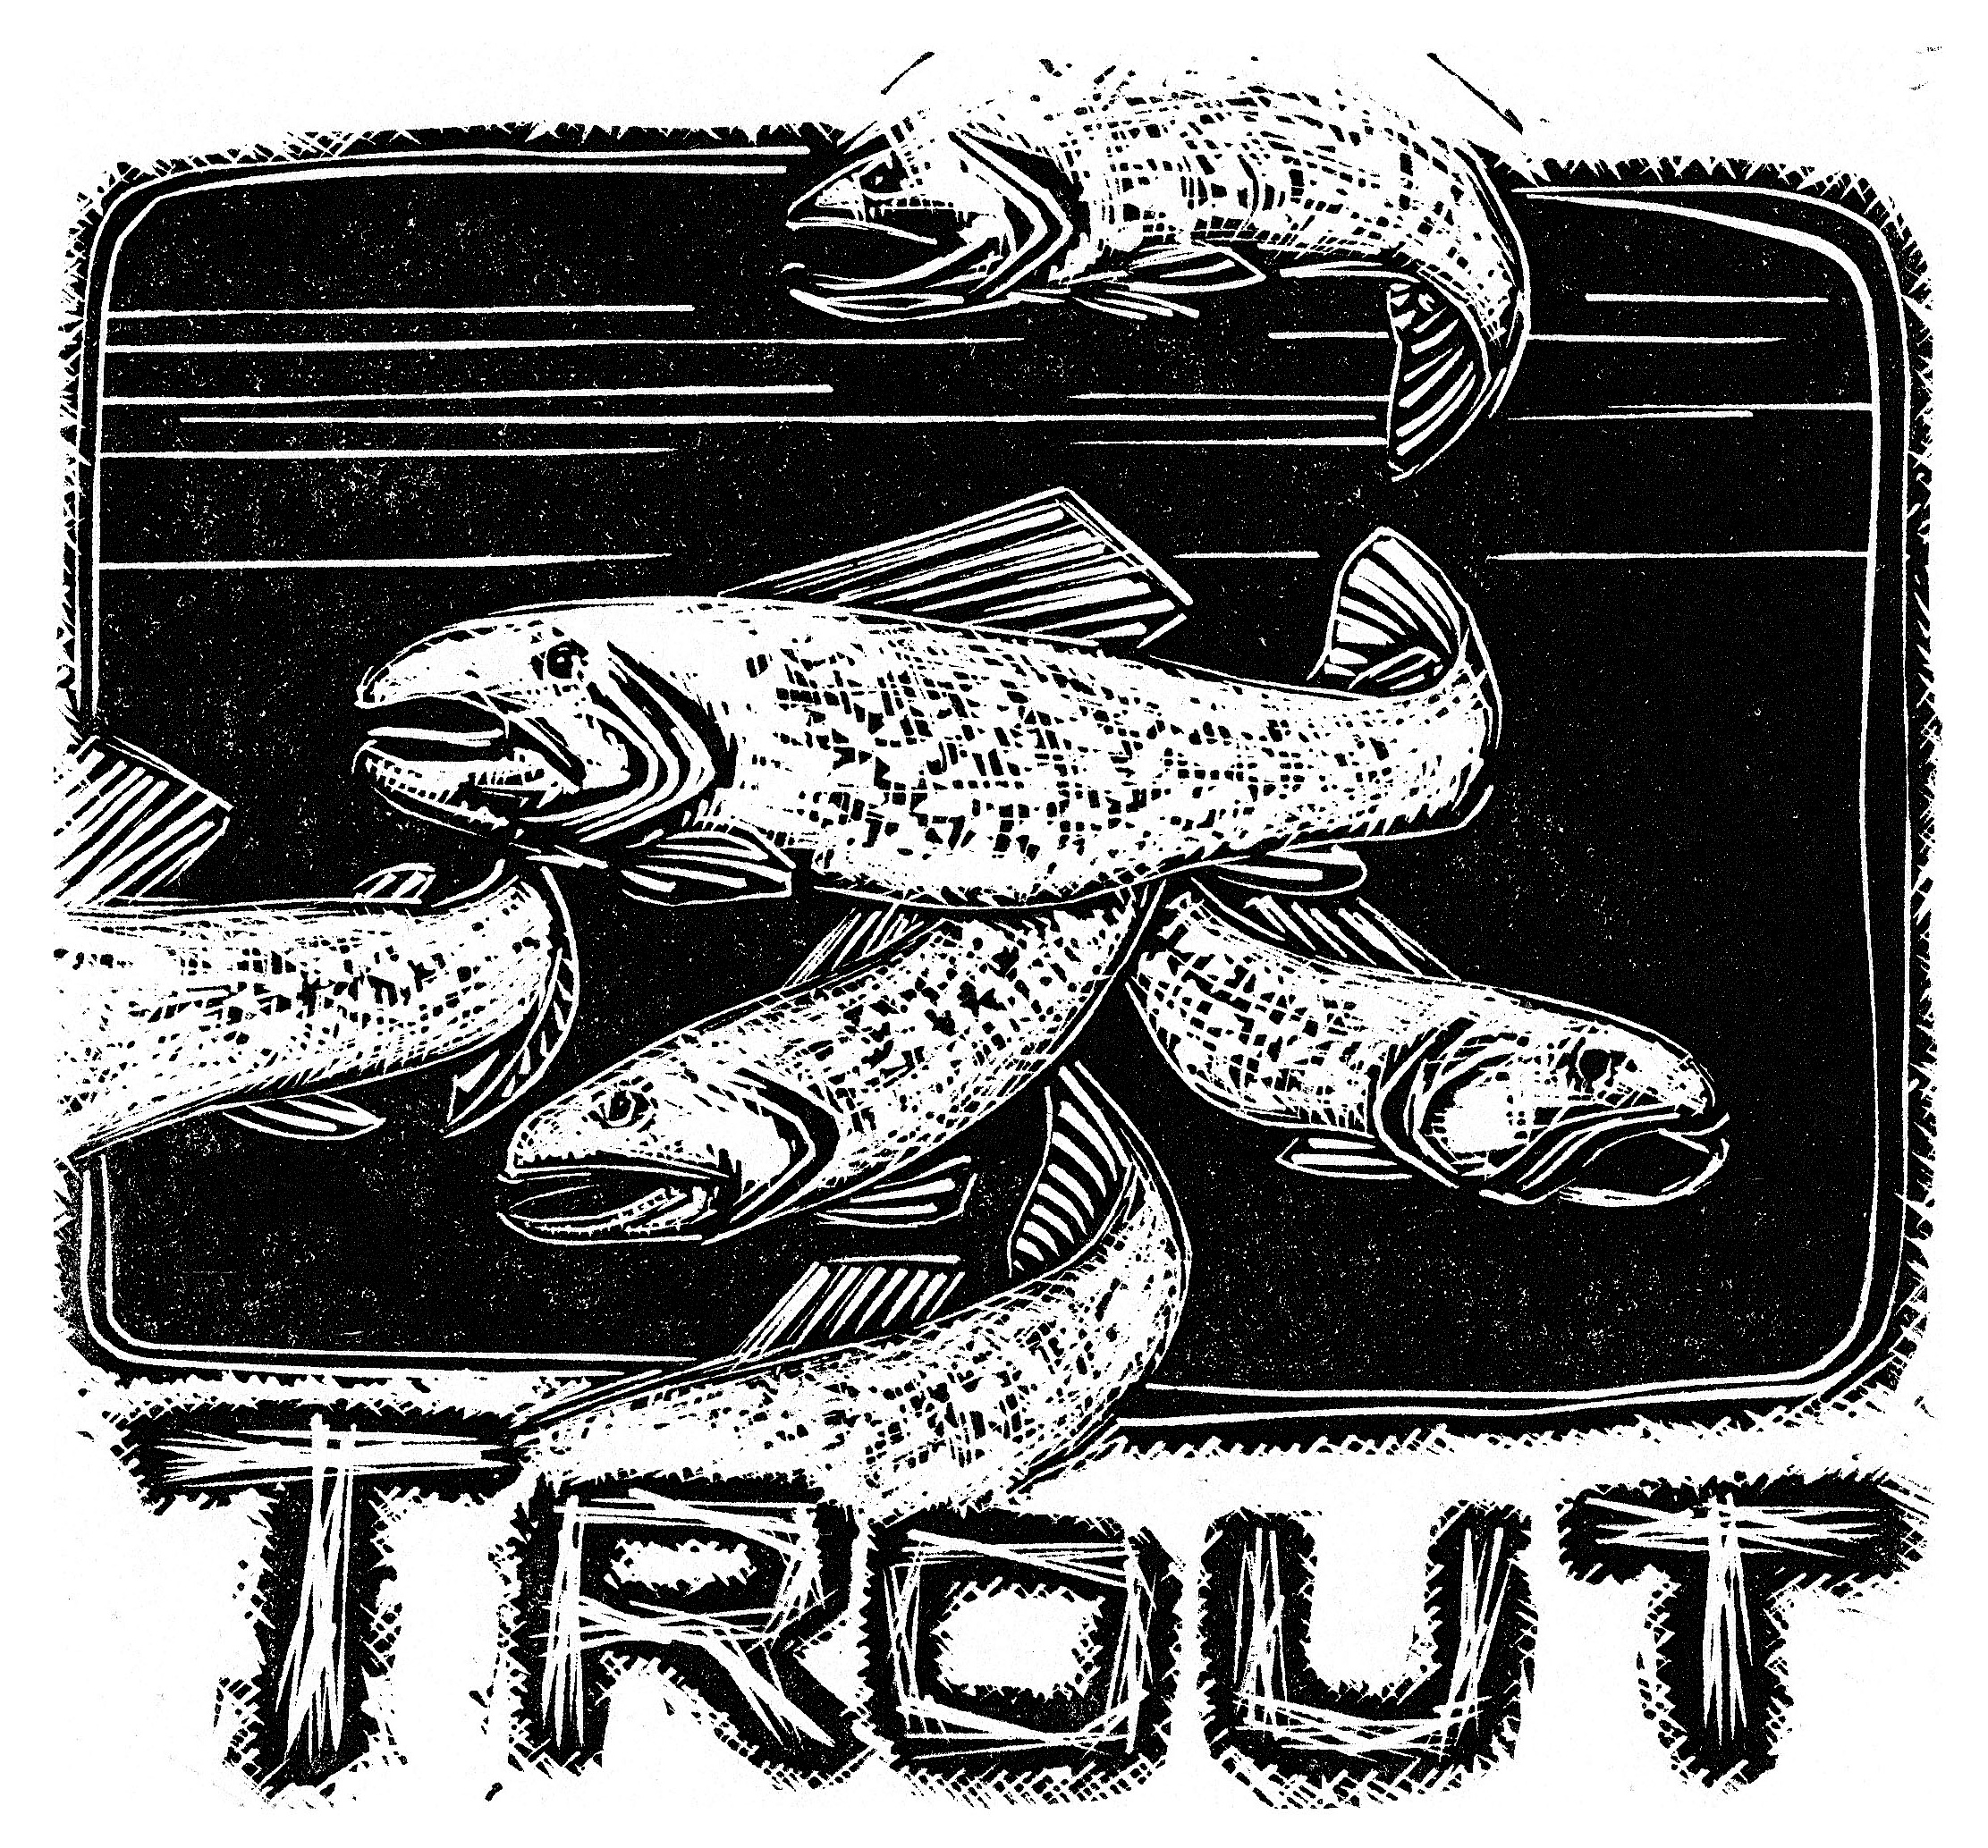 T-is-for-Trout-(from-the-Alphabet-Series)